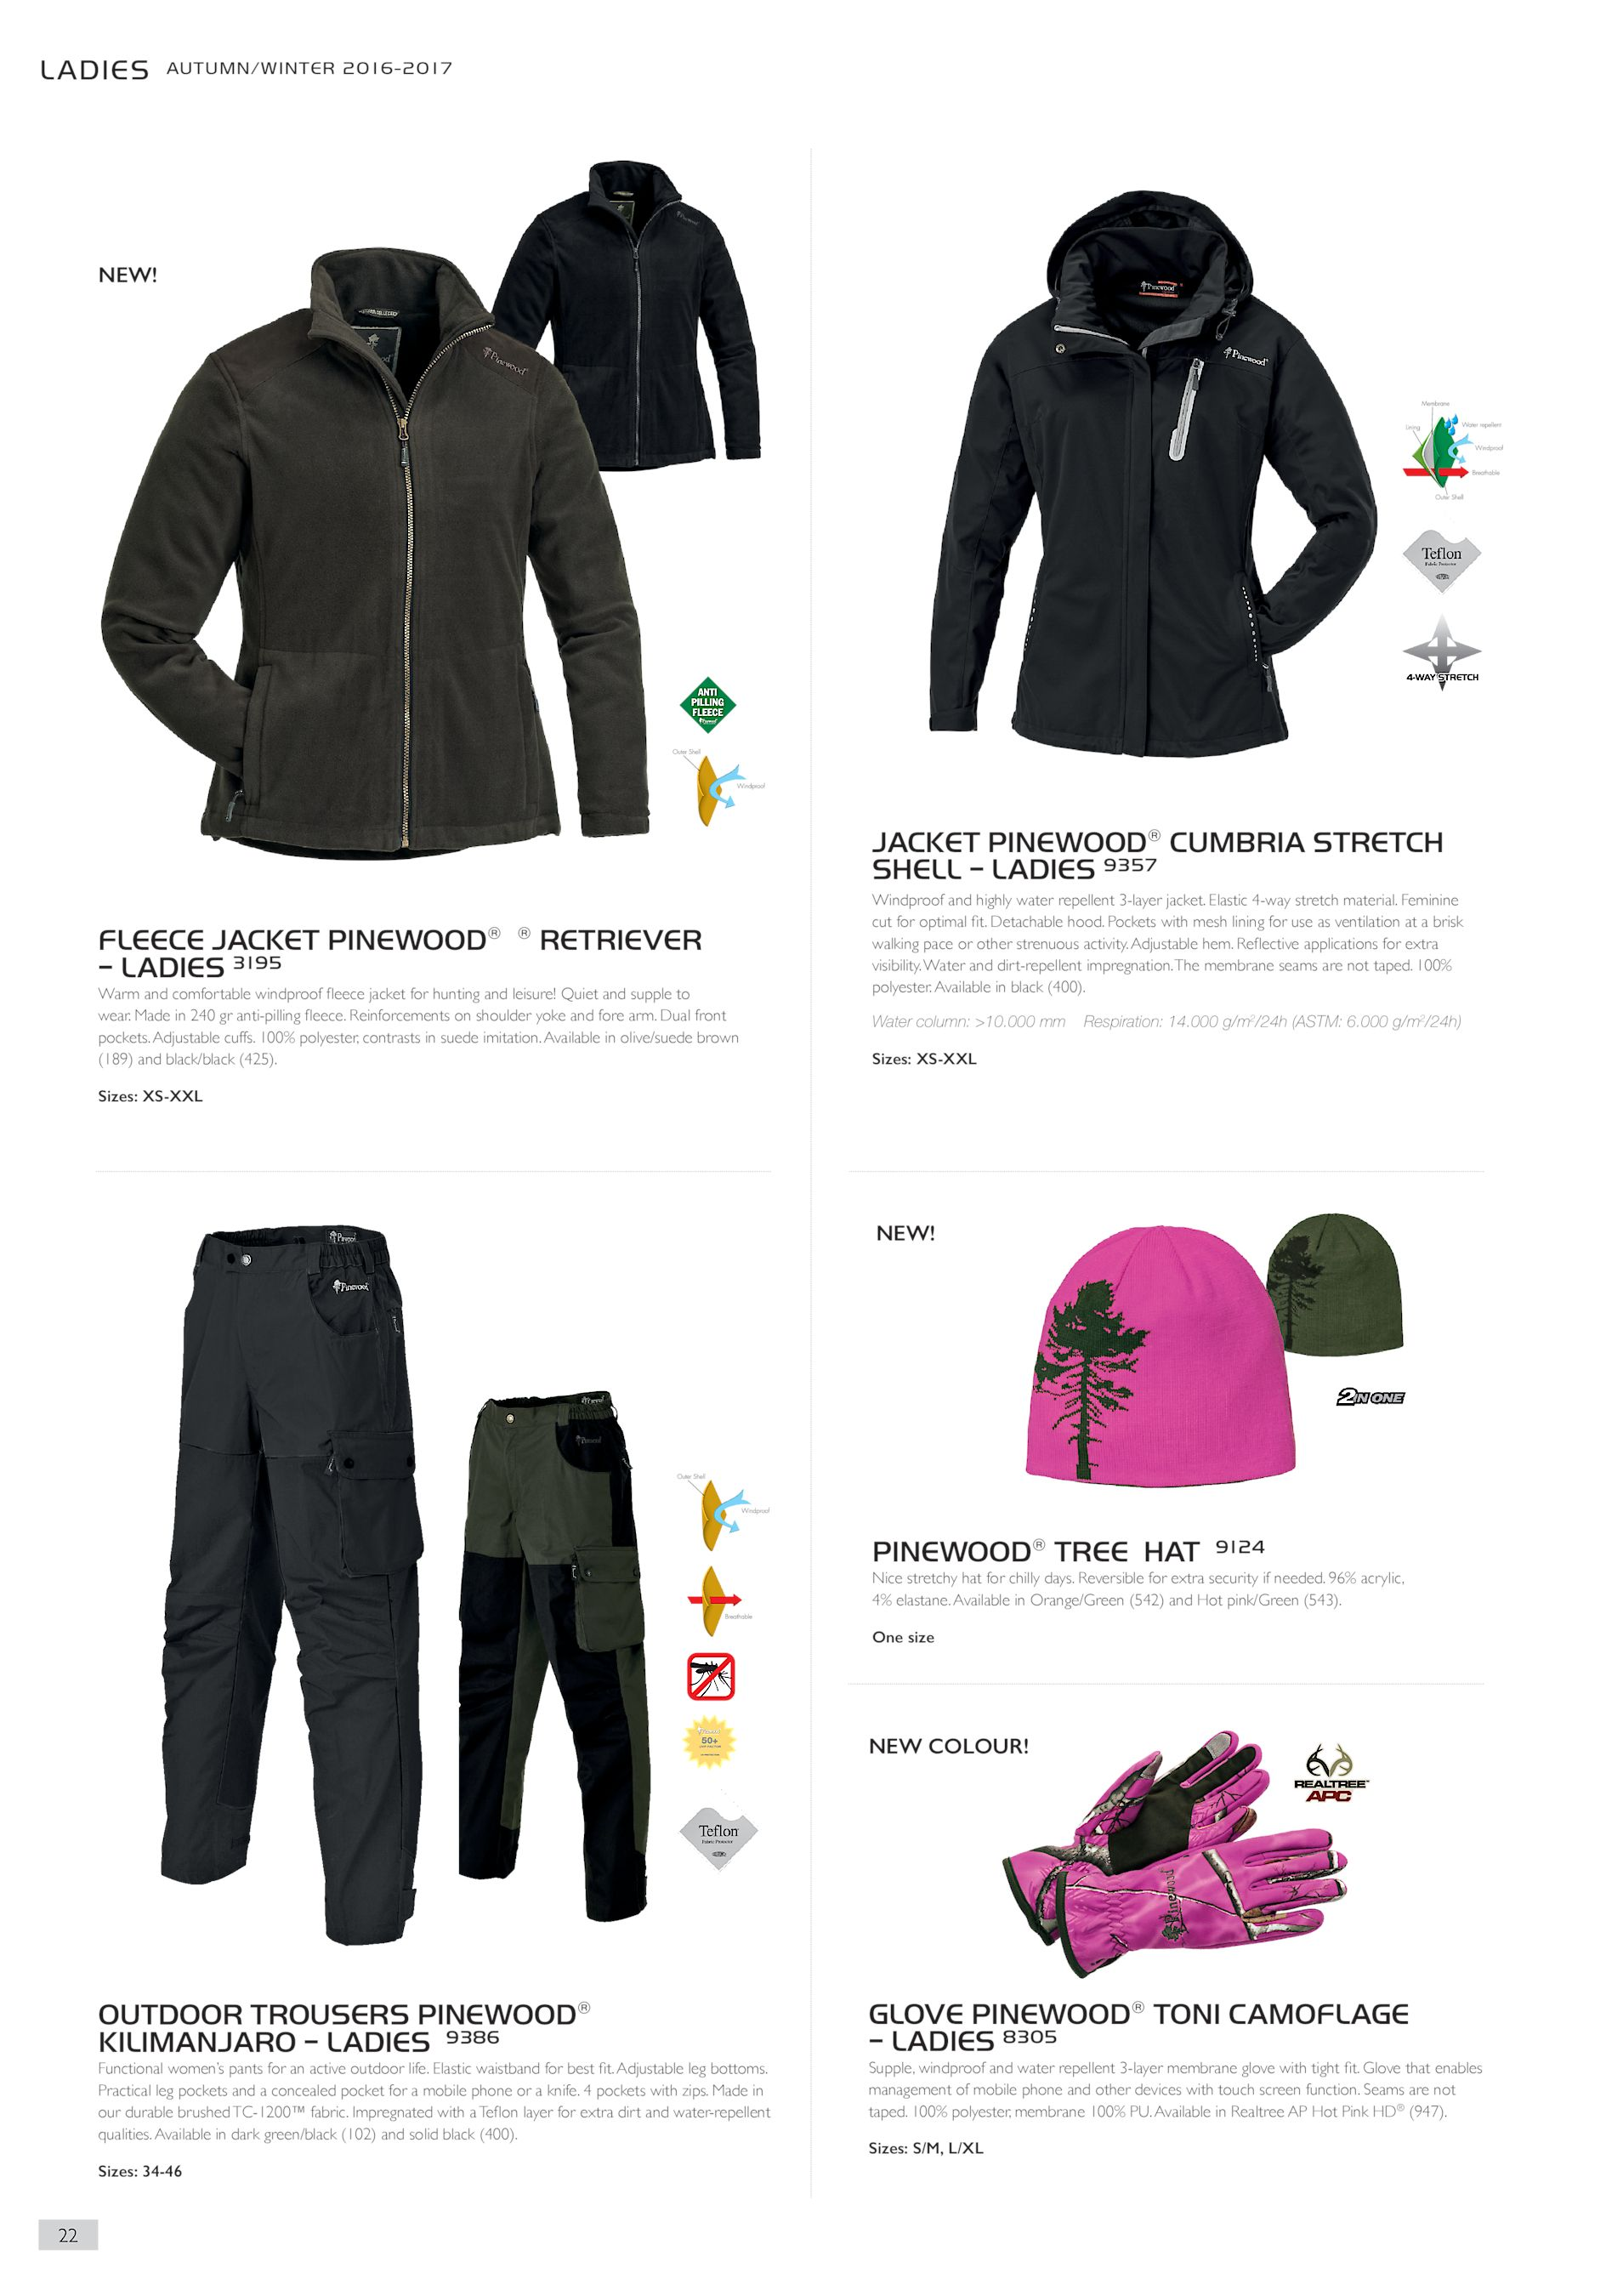 JACKET PINEWOOD® CUMBRIA STRETCH SHELL – LADIES 9357 FLEECE JACKET PINEWOOD®  ® RETRIEVER – LADIES 3195 Warm and comfortable windproof fleece jacket for  ... ff442f132a3ad